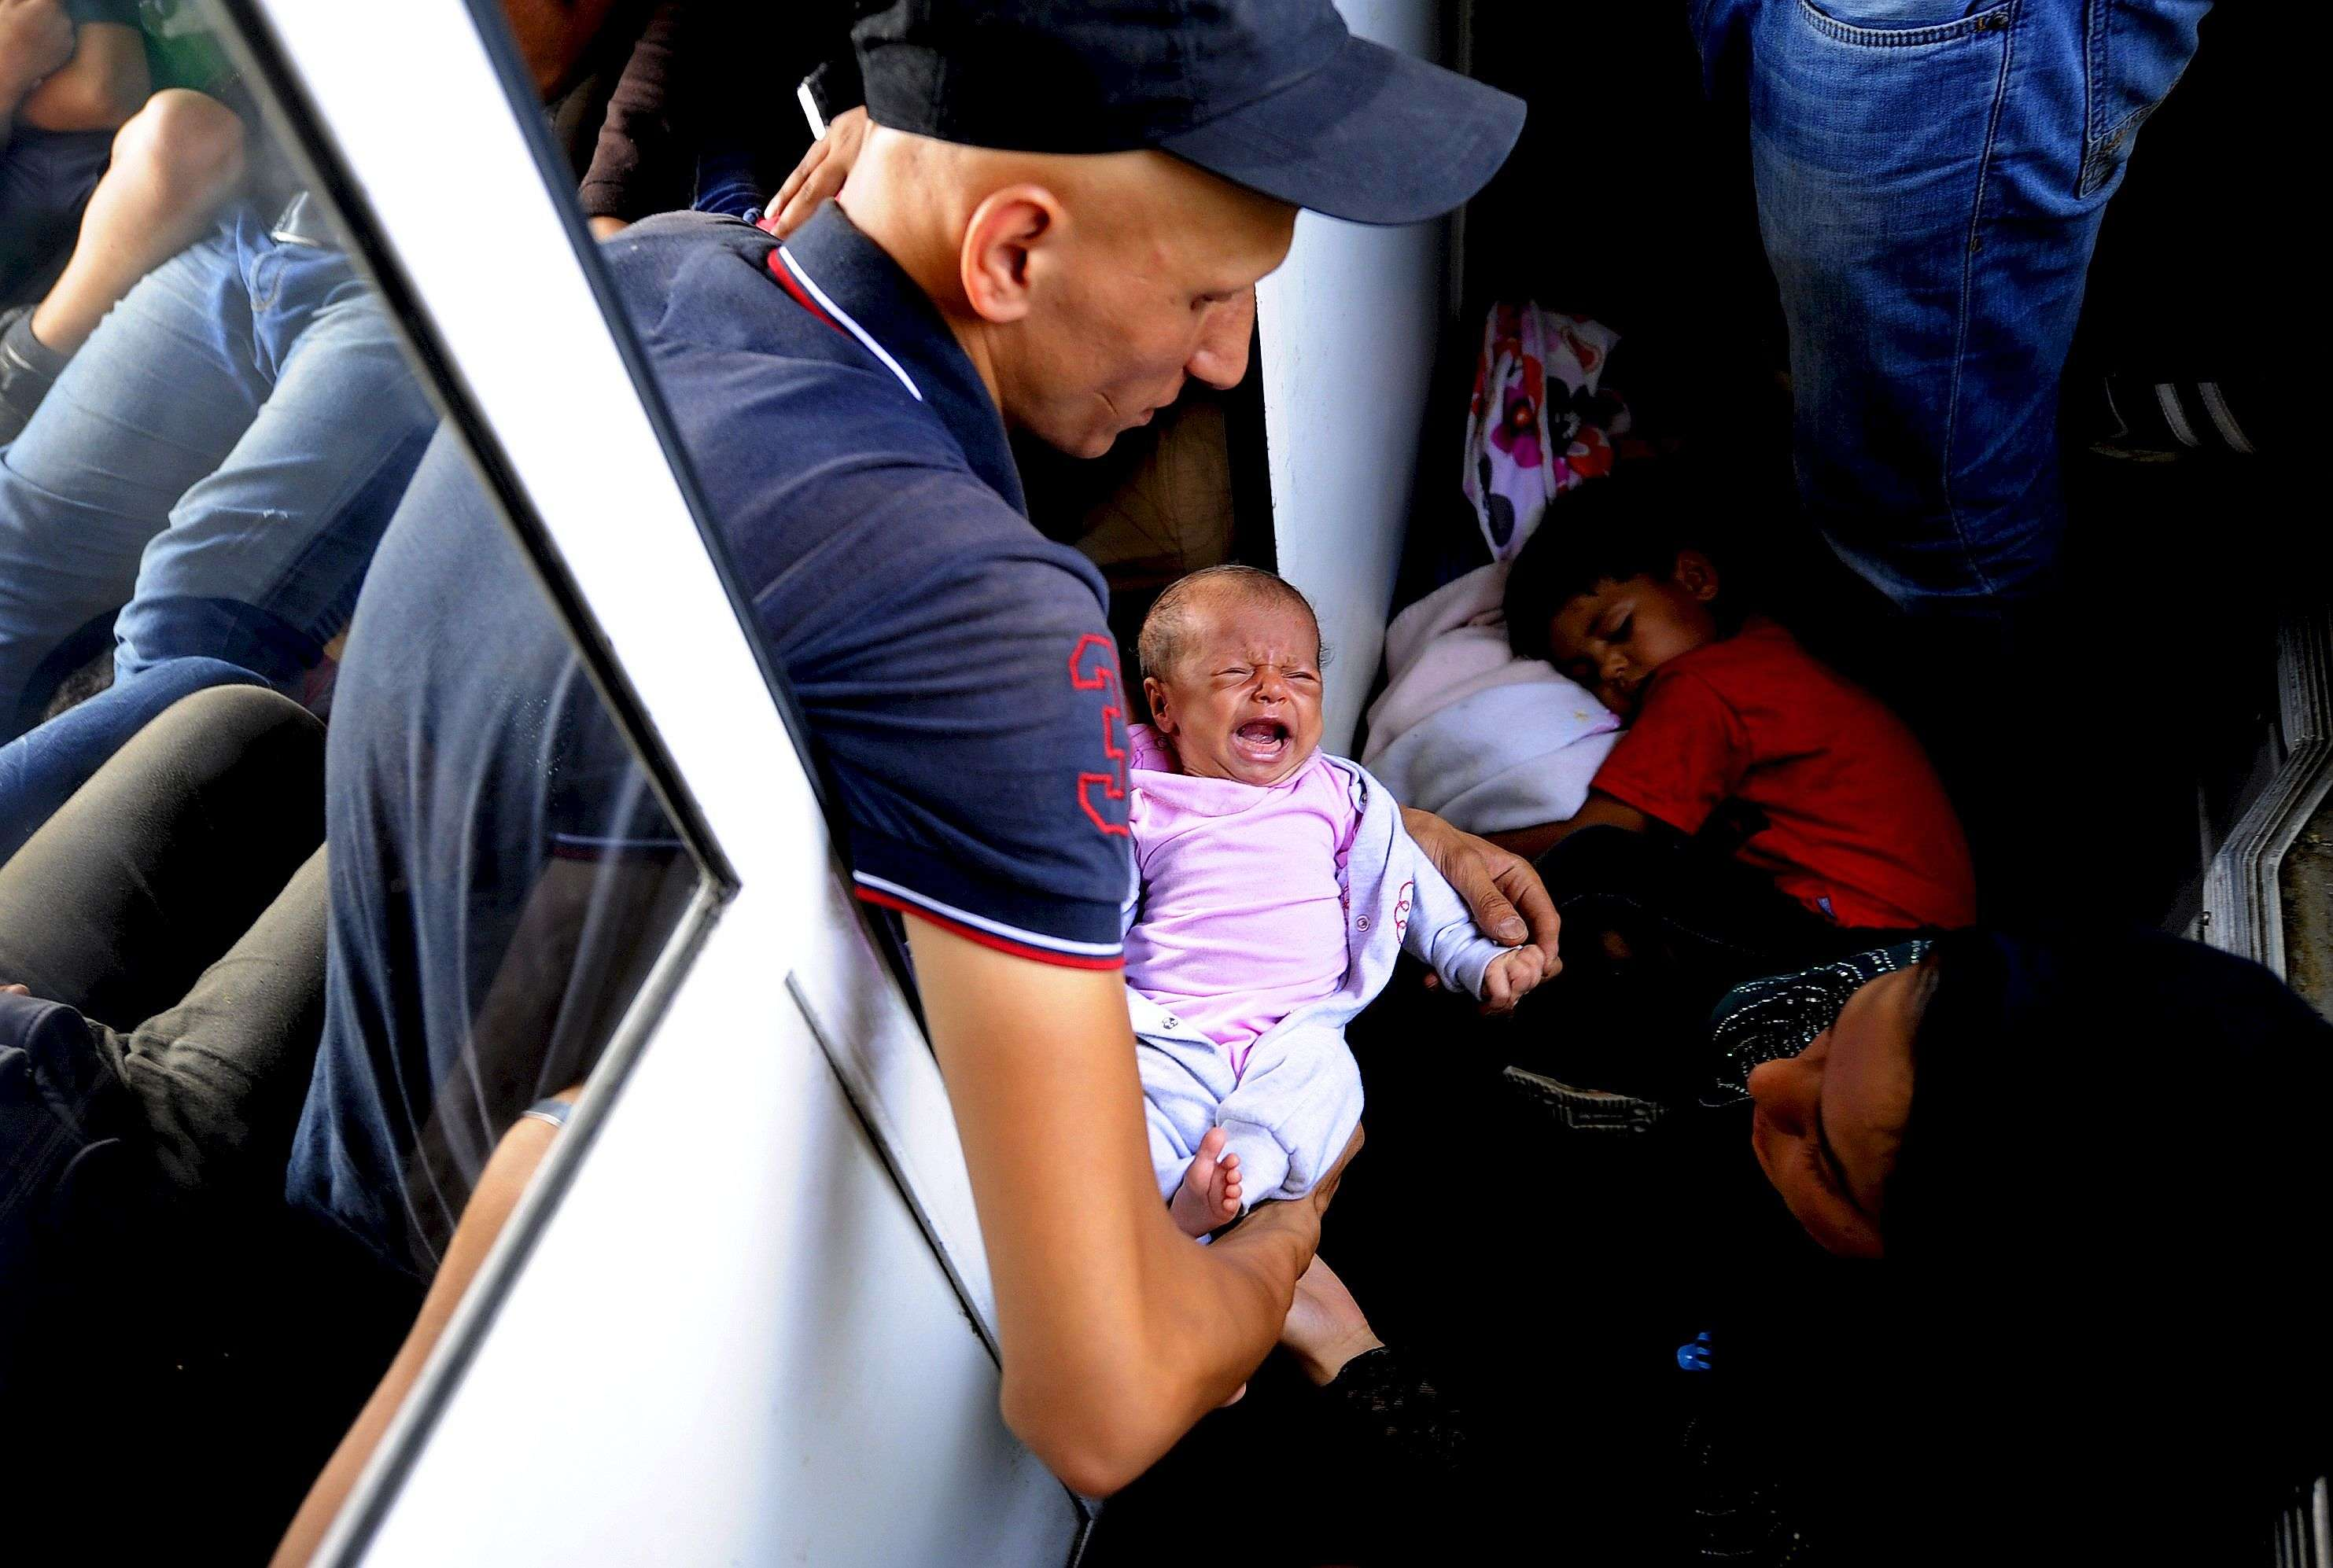 "A migrant from Aleppo, Syria holds his 30-day-old baby on an overcrowded train as they travel through Macedonia August 2, 2015. Tens of thousands of migrants, mainly from the Middle East and Africa, use the Balkans route to get into the European Union, passing from Greece to Macedonia and Serbia and then to western Europe. After walking across the border into Macedonia to the small local station of Gevgelia, migrants pile onto an overcrowded four-carriage train in sweltering heat, young infants among them, to travel about 200 km north. Their aim: to enter Serbia on foot, another step in their uncertain search for a better life.  REUTERS/Ognen Teofilovski TPX IMAGES OF THE DAYPICTURE 24 OF 33 FOR WIDER IMAGE STORY ""MIGRANTS: A TRAIN TOWARDS A NEW LIFE""SEARCH ""TEOFILOVSKI TRAIN"" FOR ALL PICTURES"